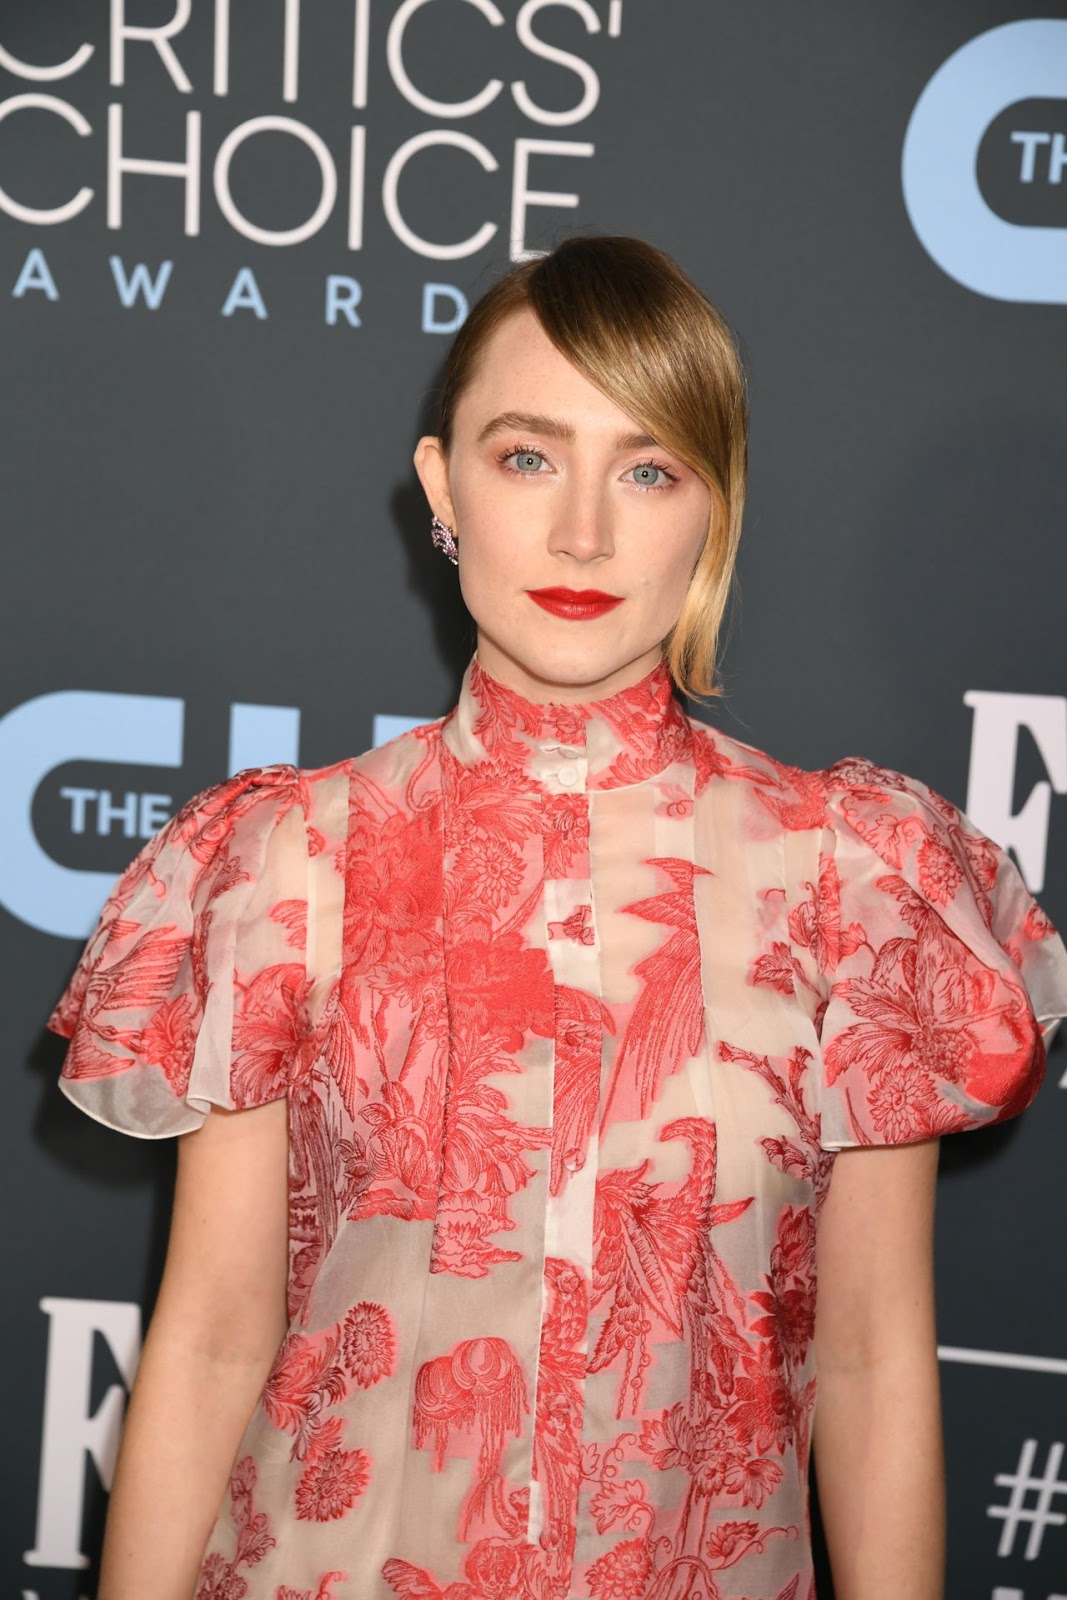 Saoirse Ronan's Critics' Choice Awards Look Is The Antithesis Of Her Sexy Golden Globes Gown